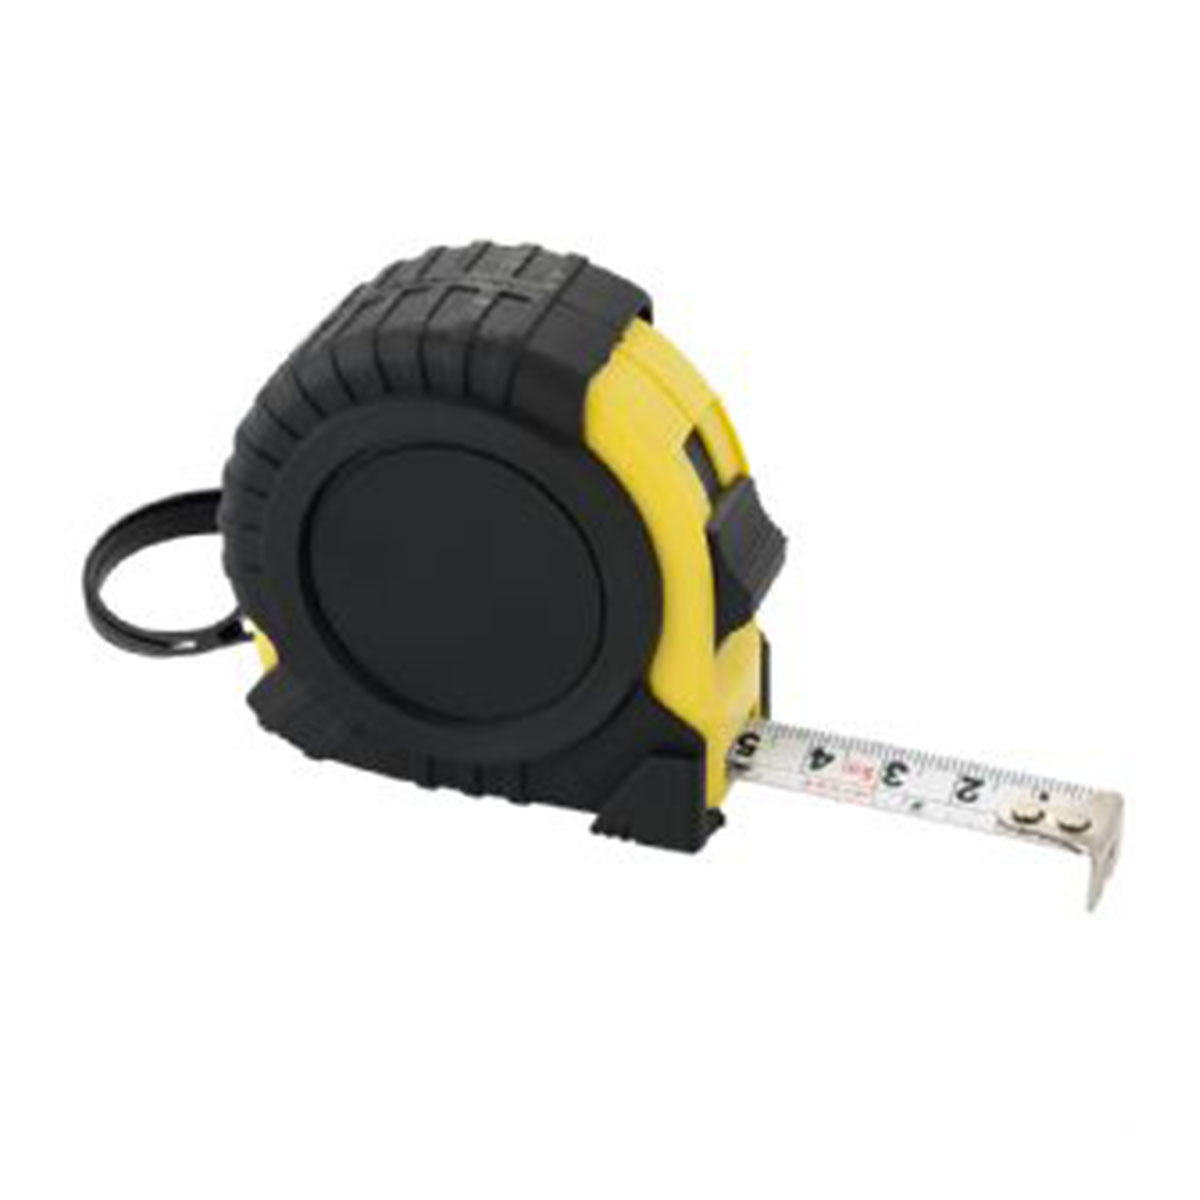 5M Measuring Tape-Black with Yellow Trim